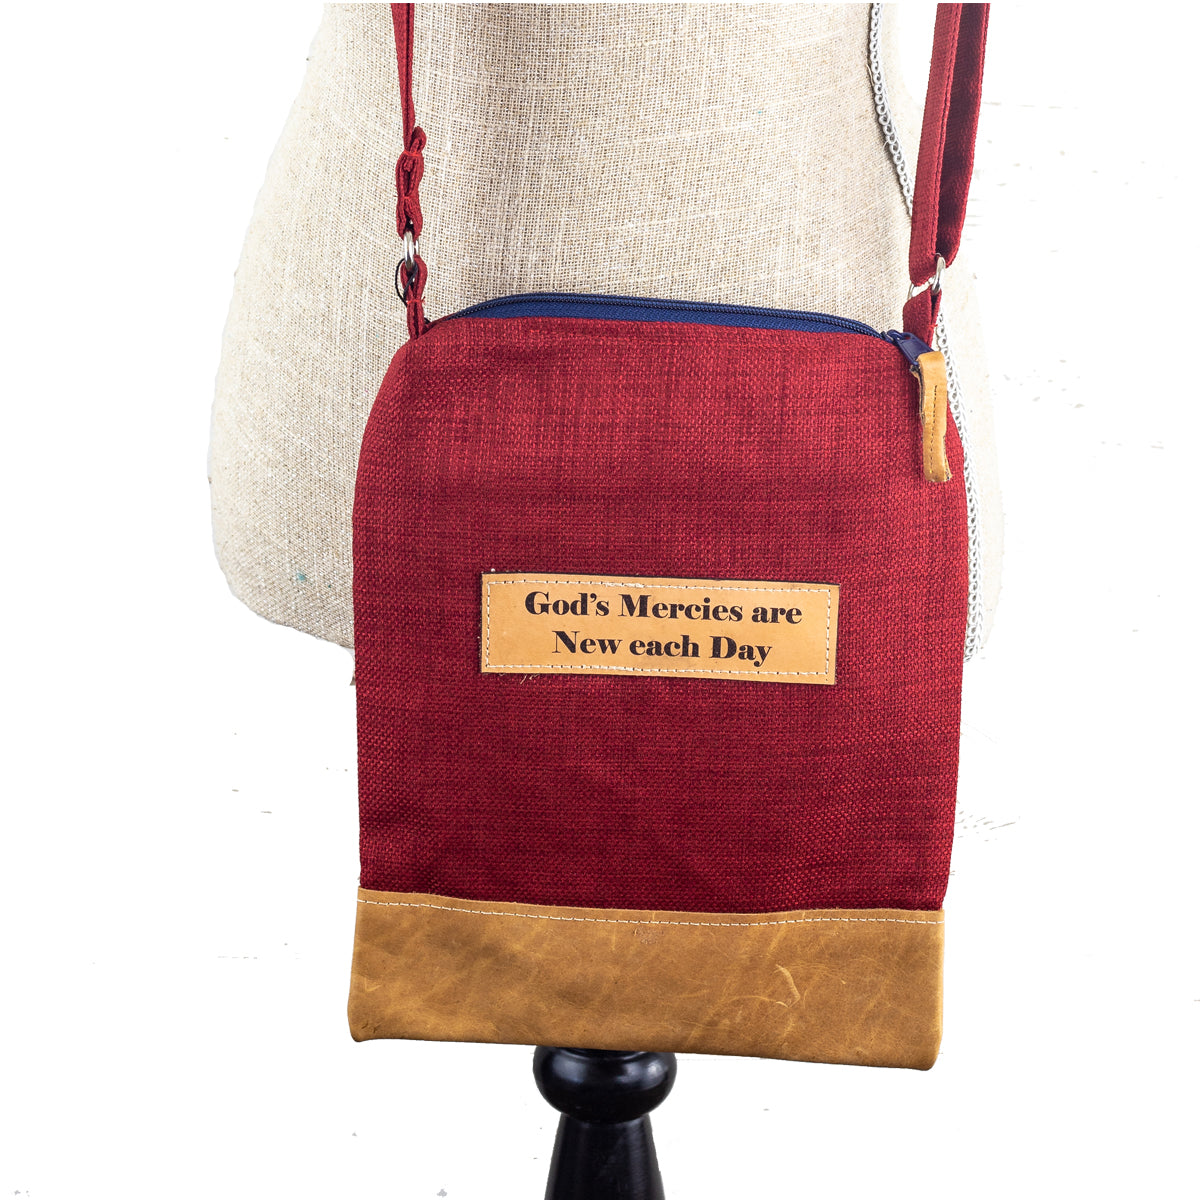 Fabric & Leather Crossbody Bag - God's Mercies